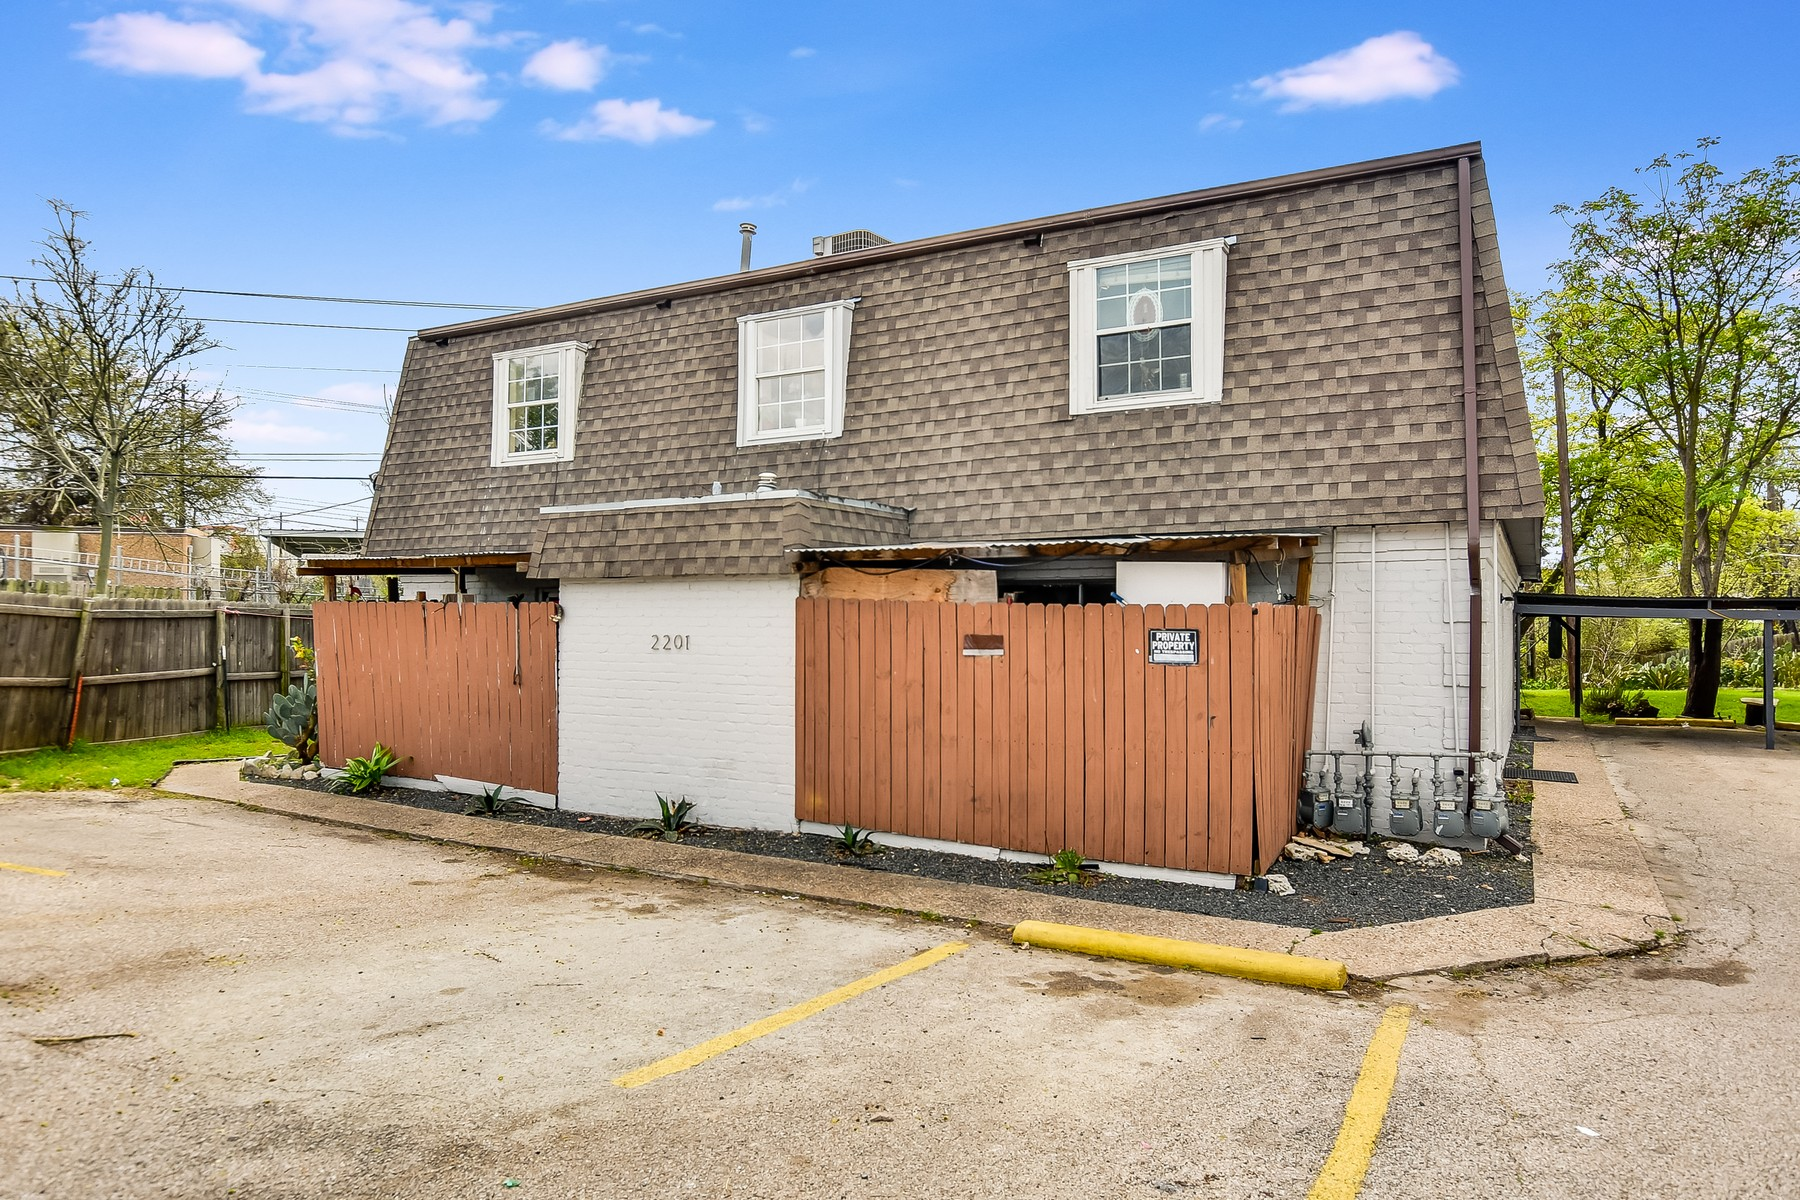 Multi-Family Home for Sale at Great Investment Opportunity! 2201 Mission Hill Cir Austin, Texas 78741 United States